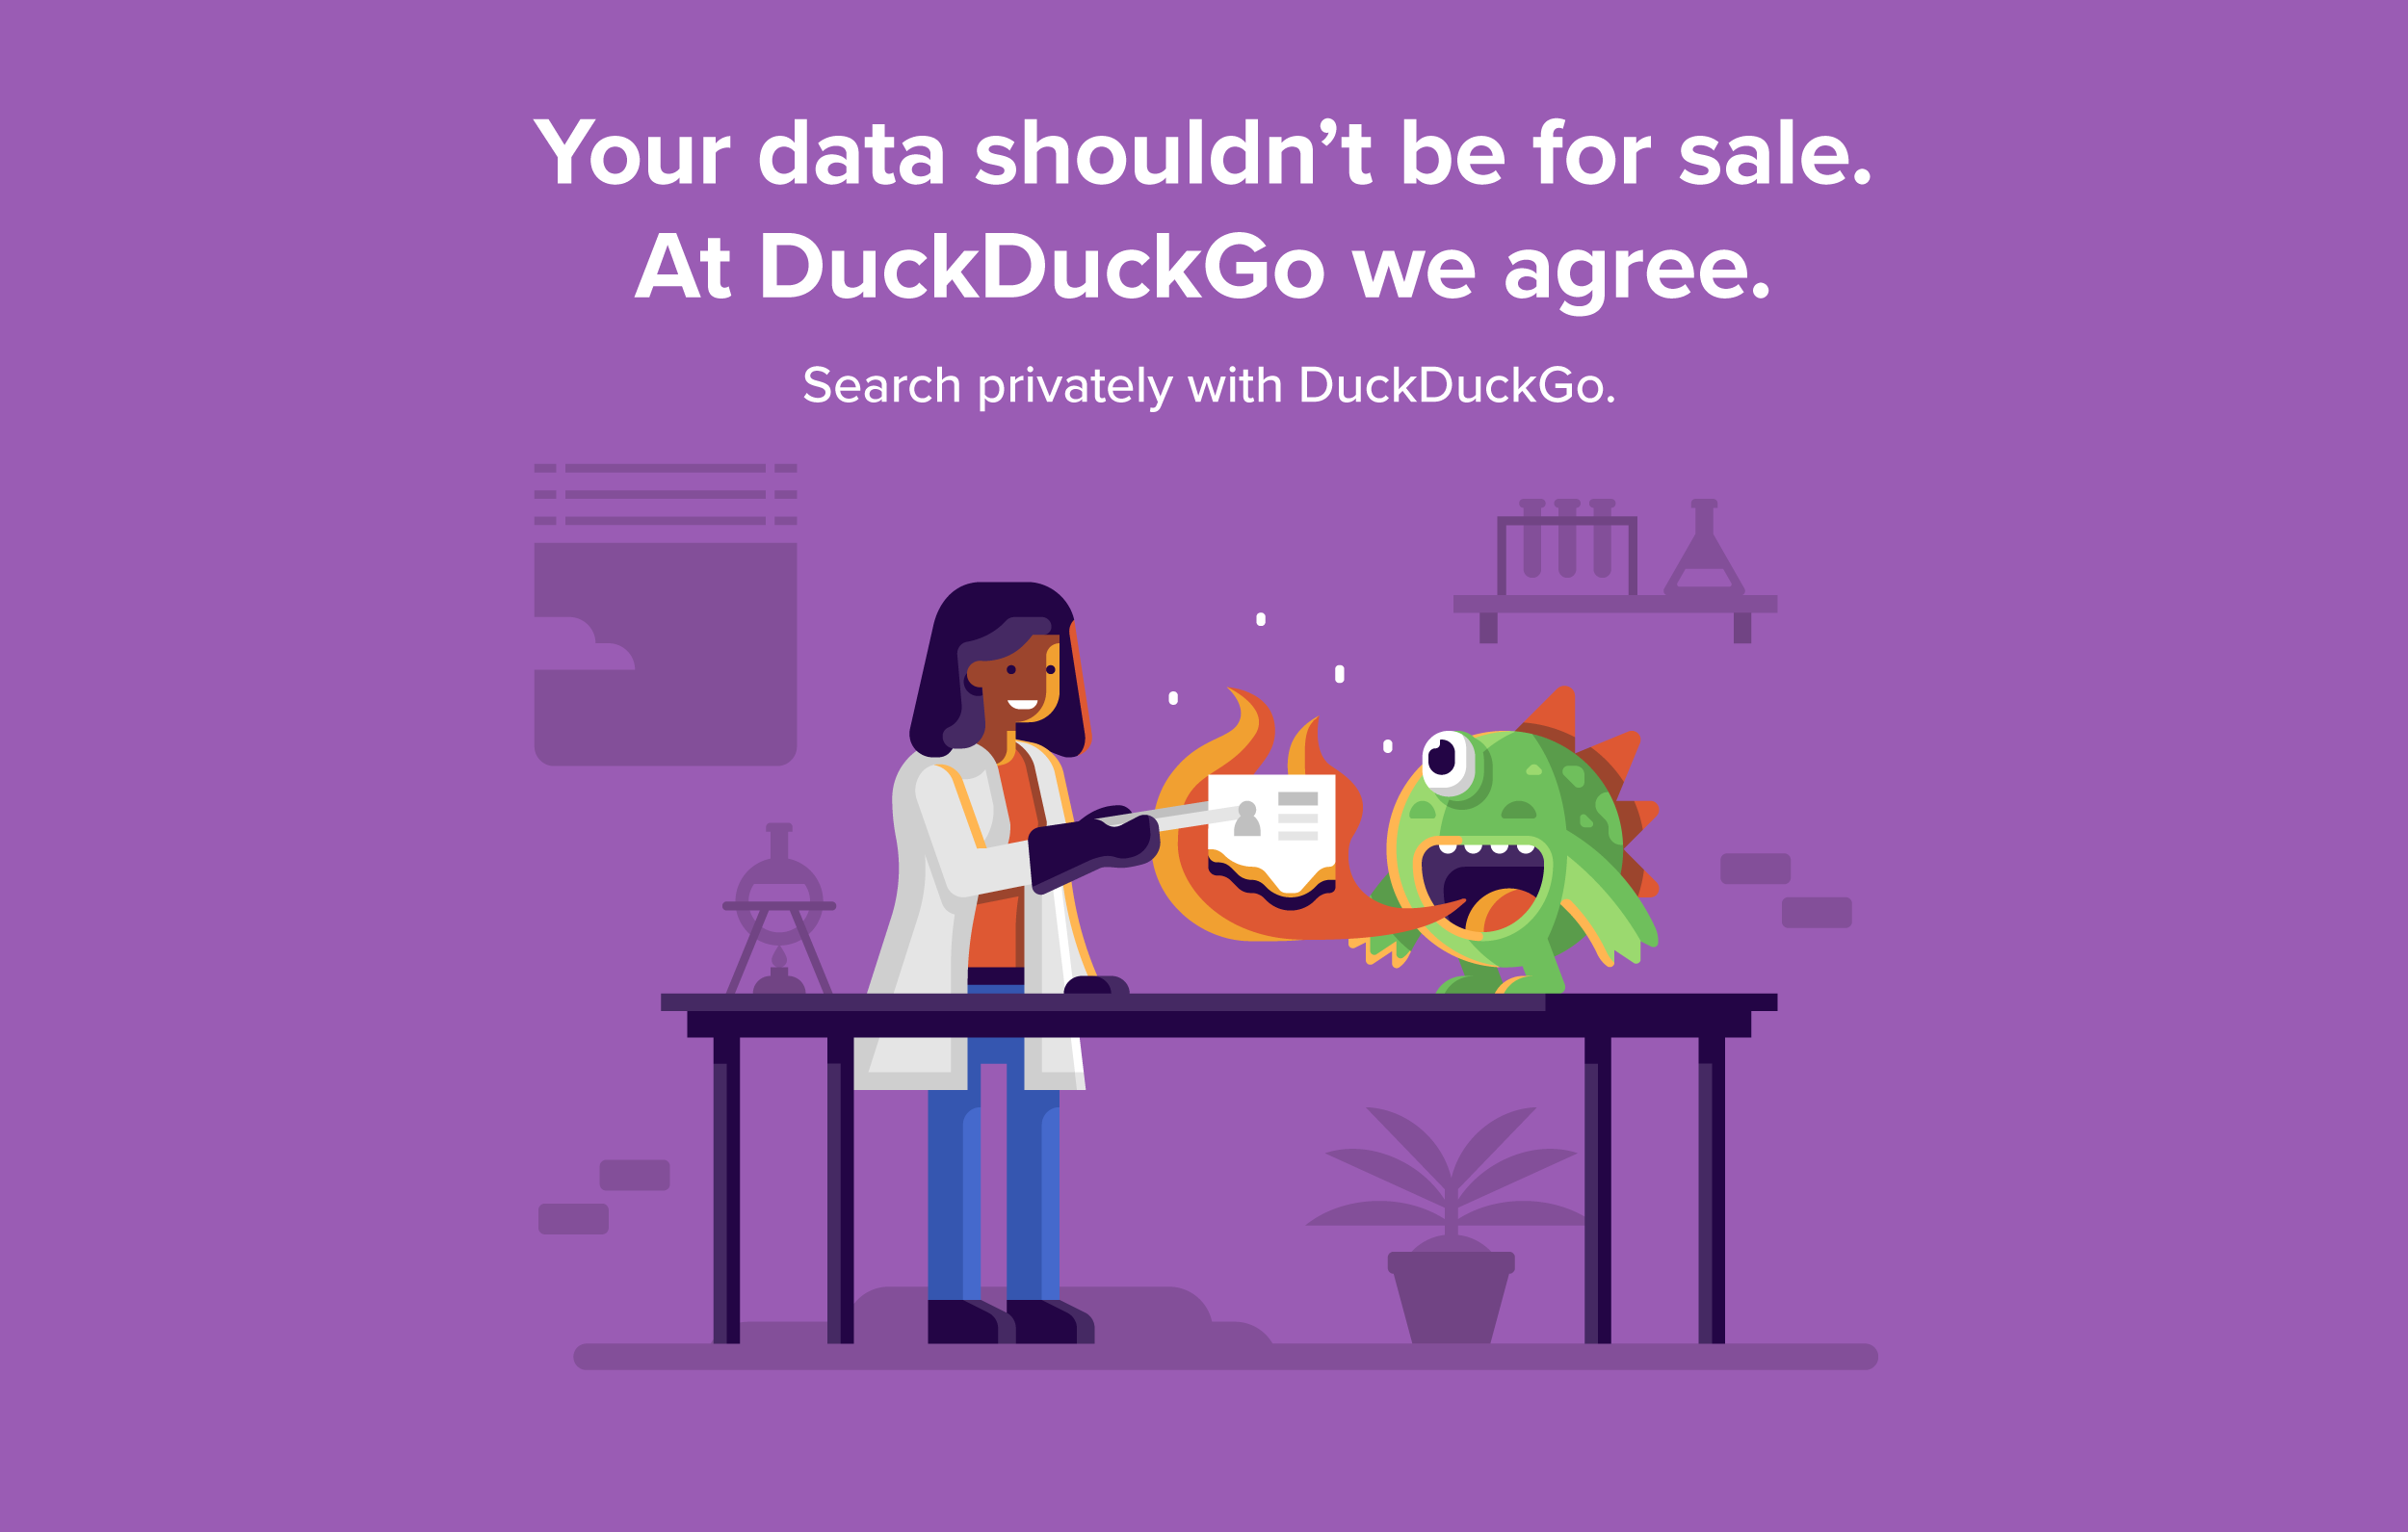 Matt Anderson DuckDuckGo character scenes. Scientist burning data with fire breathing monster.